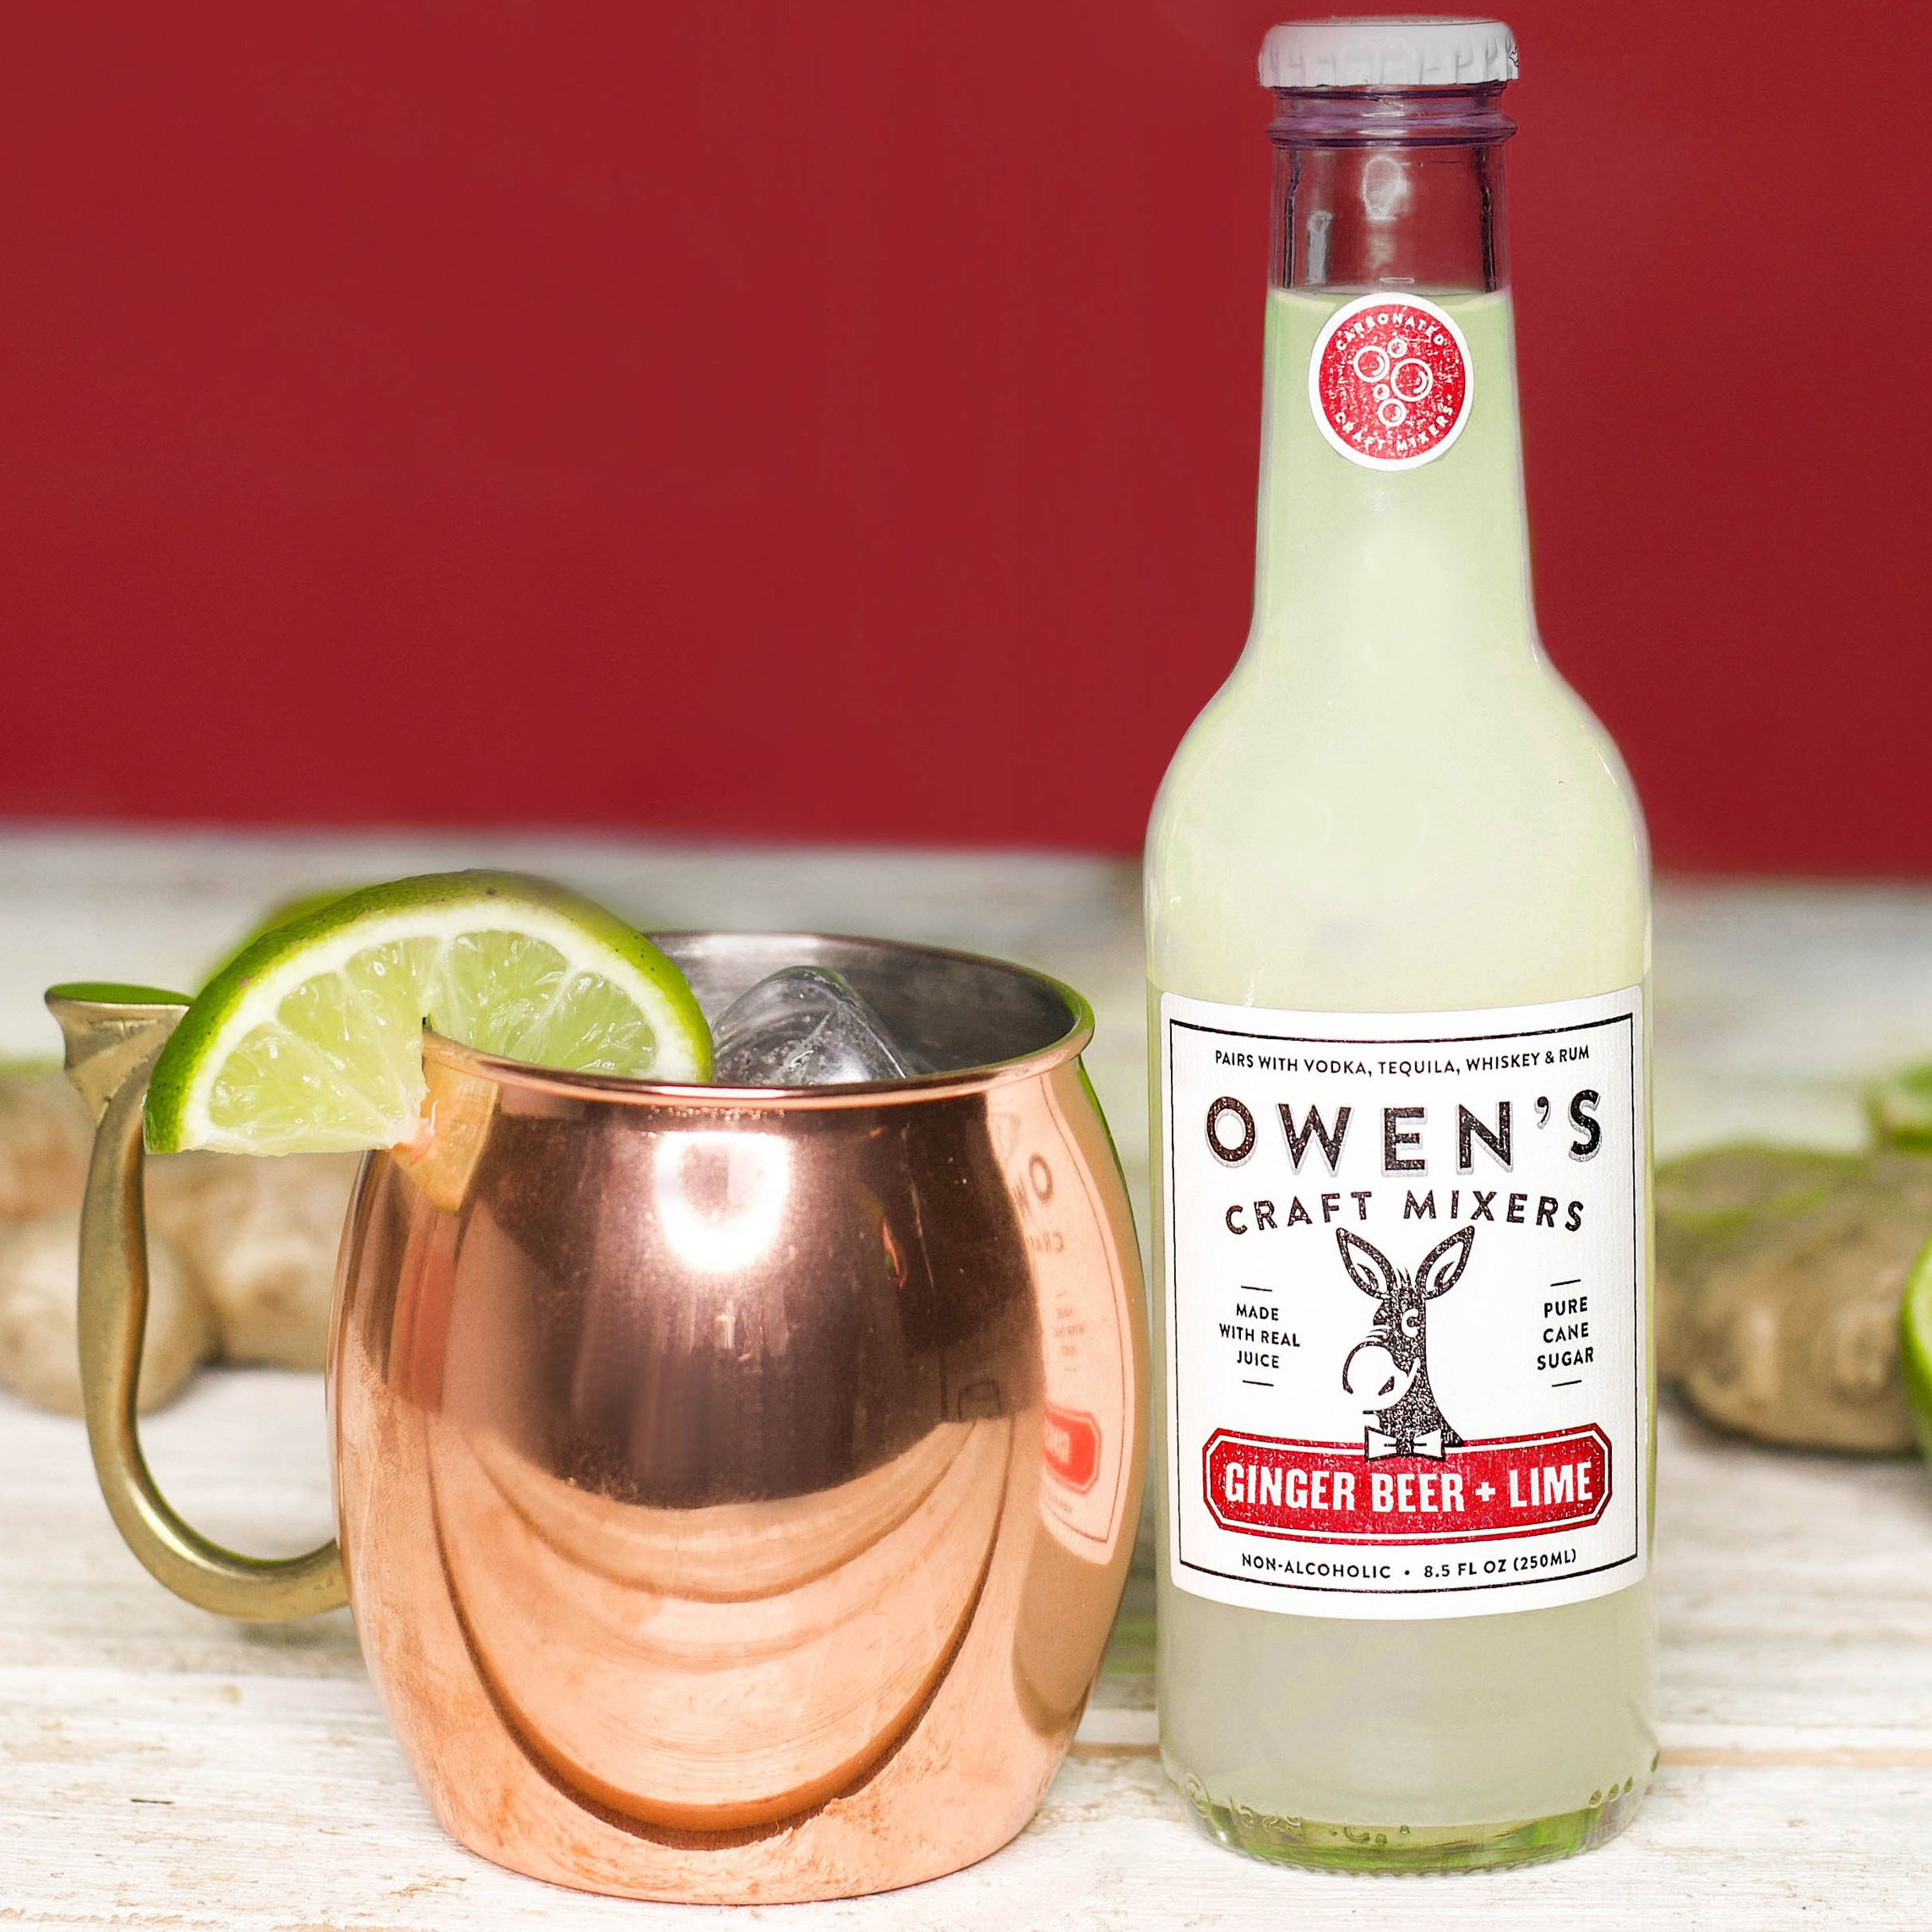 Owen's Craft Mixers - Ginger Beer + Lime